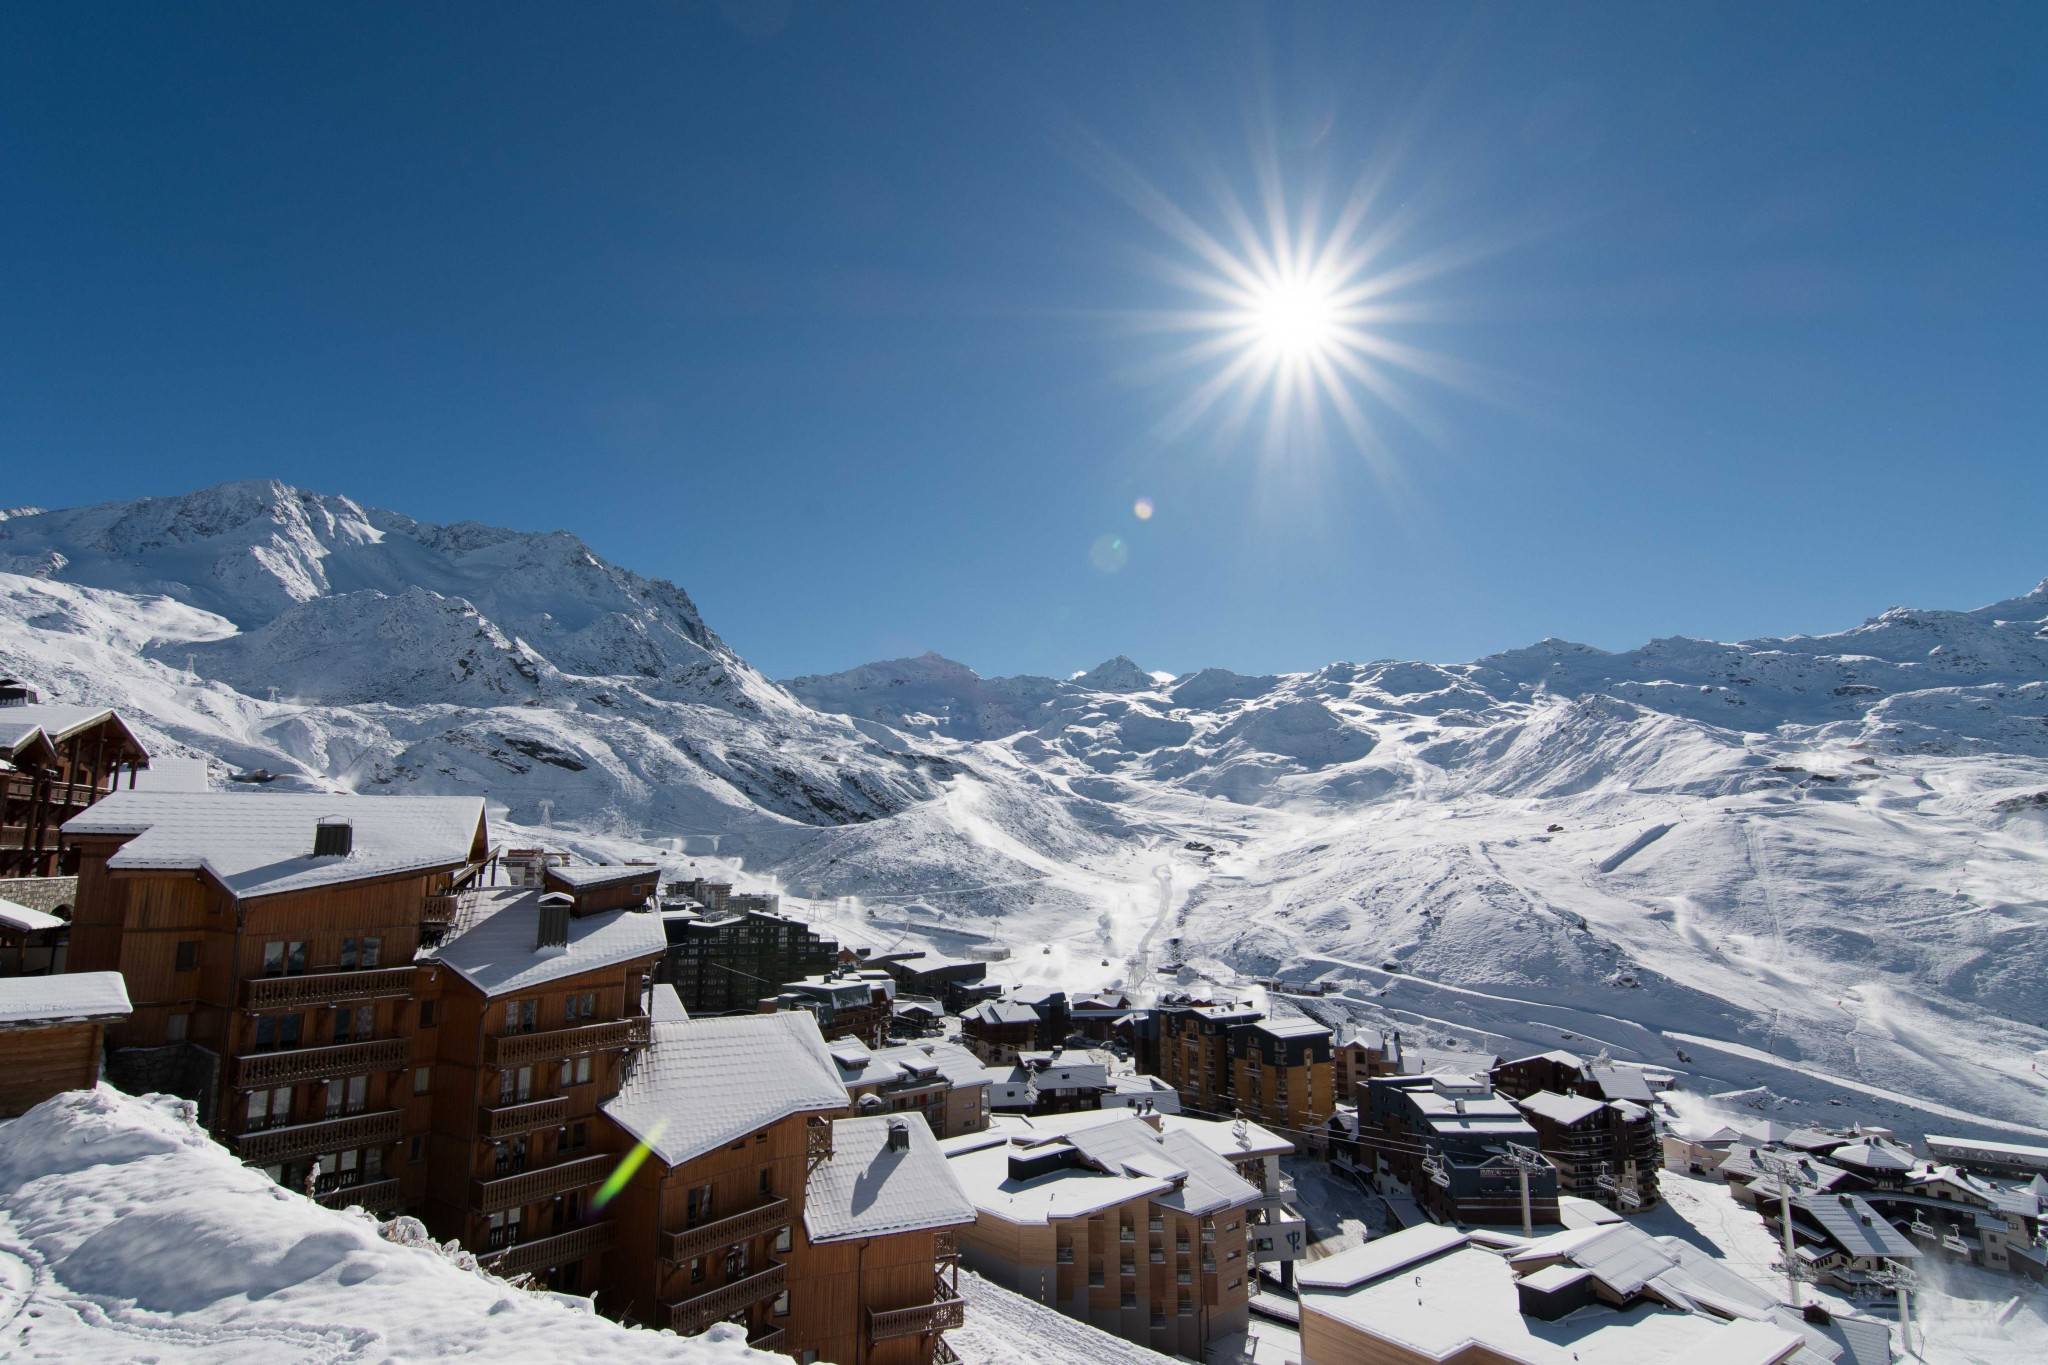 val-thorens-credit-t-loubere-o-t-val-thorens-copy